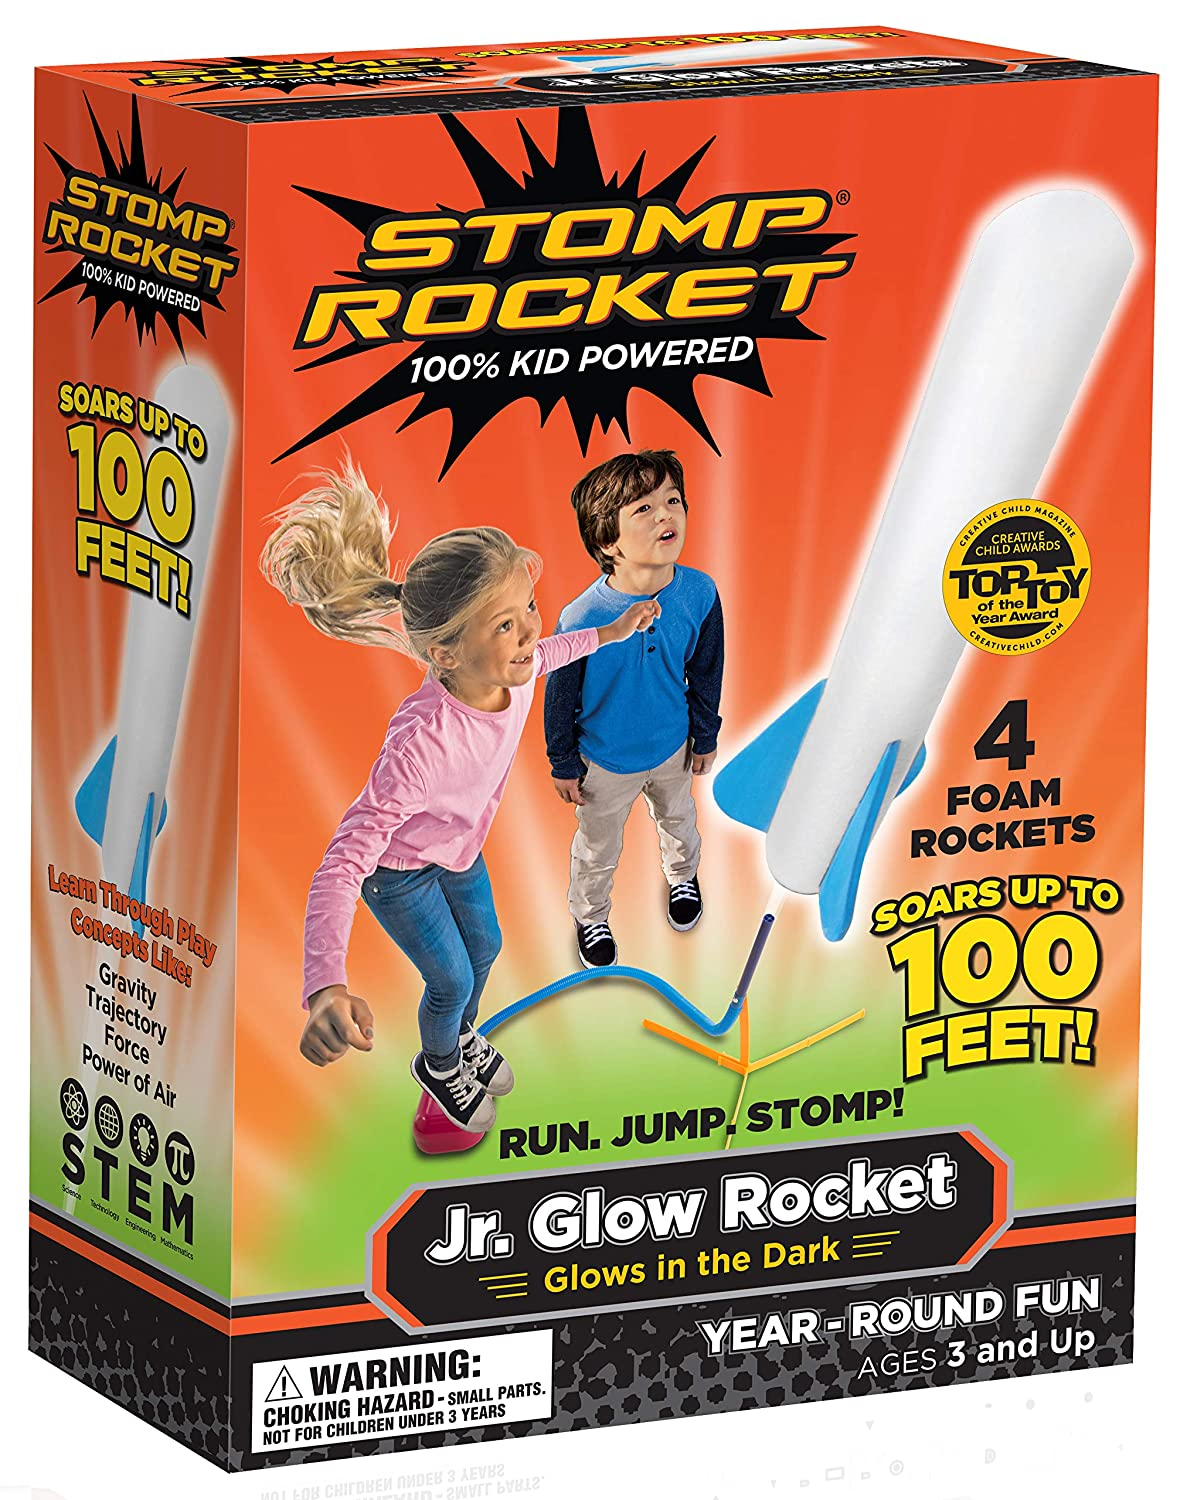 Stomp Rocket The Original Jr. Glow, 4 Rockets